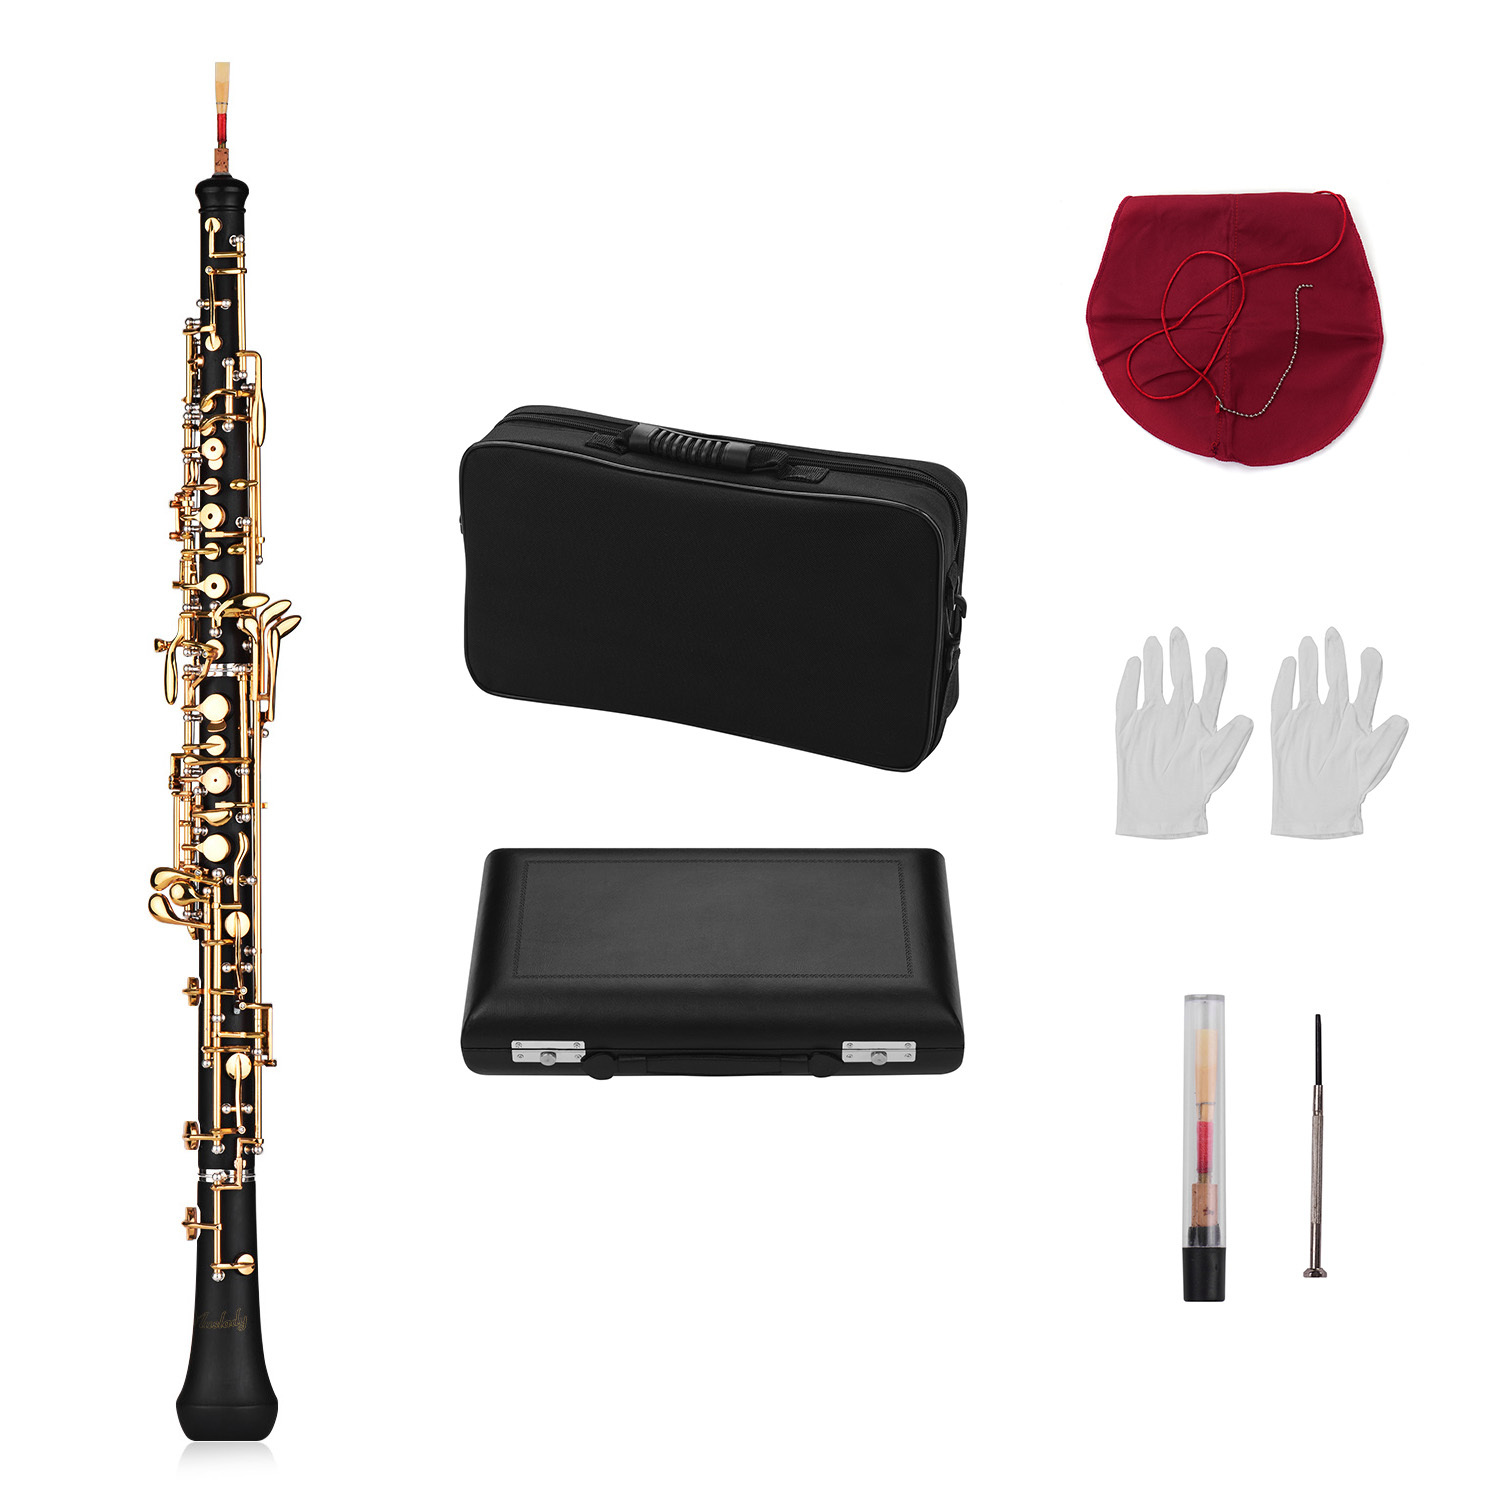 Professional Oboe C Key Semi-automatic Style Nickel-plated Keys Woodwind Instrument with Oboe Reed Gloves Leather Case Carry Bag